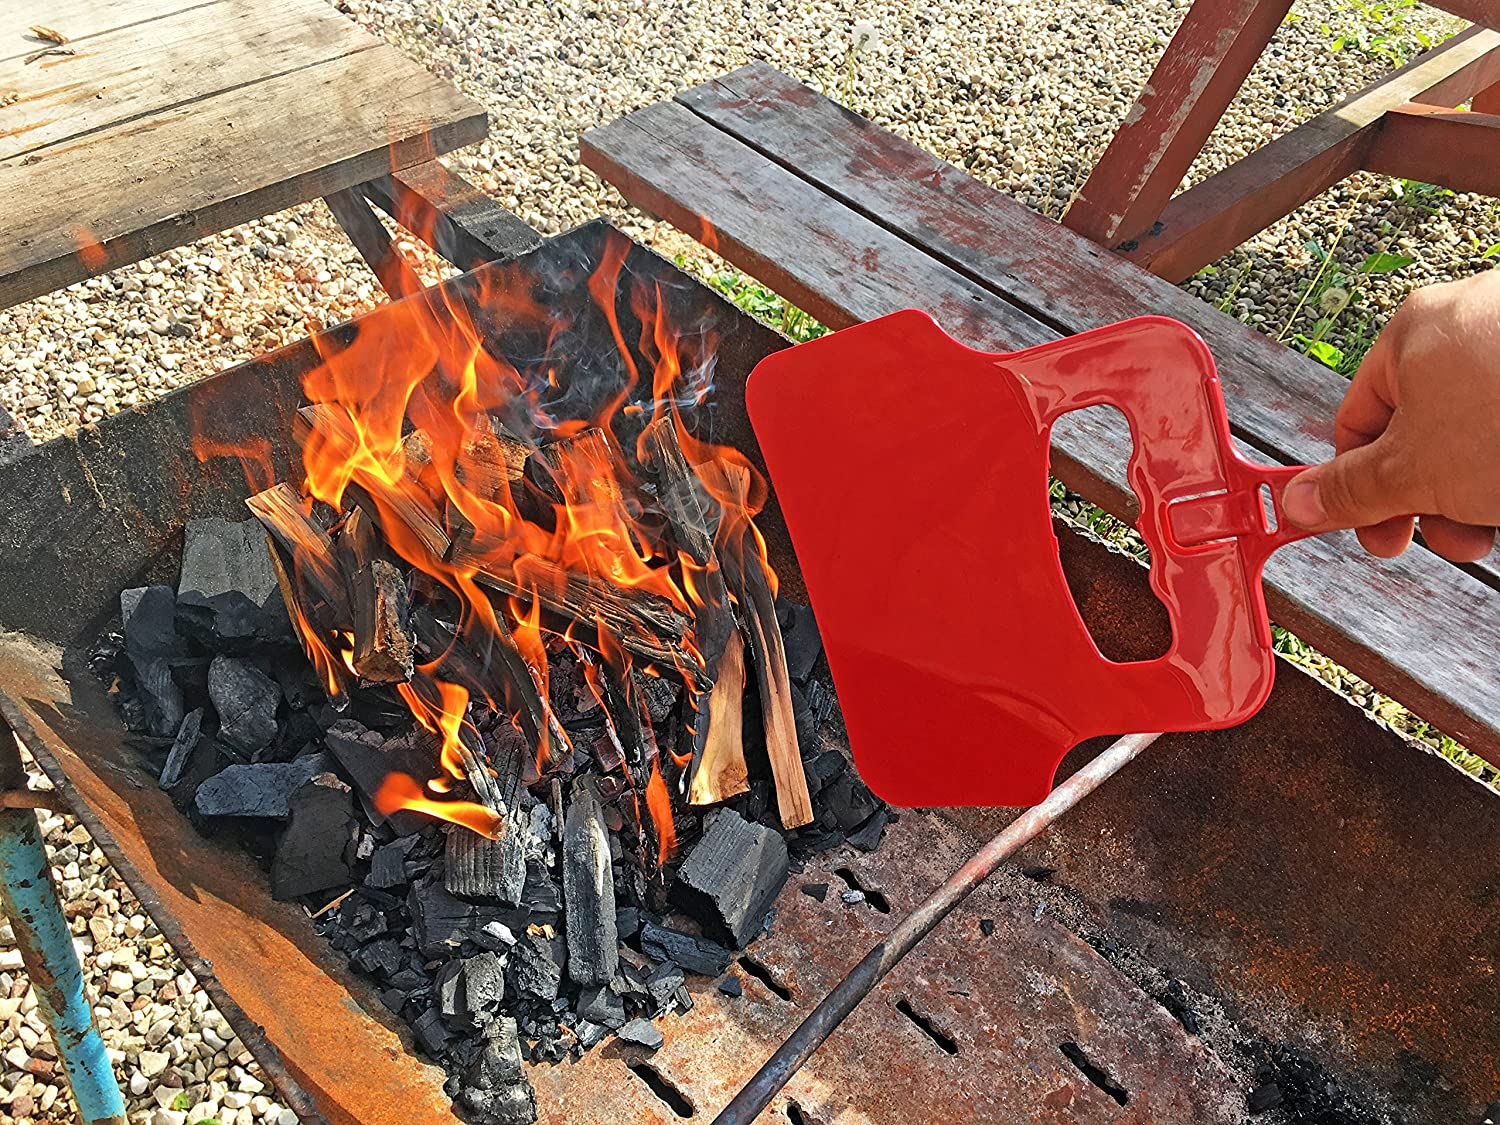 Amazon.com : Air4Grill Grill Fan - BBQ Fan - Hand Crank Blower - Barbecue Coal Blower - Barbecue Manual Blower - BBQ Hand Fan (Red) : Garden & Outdoor